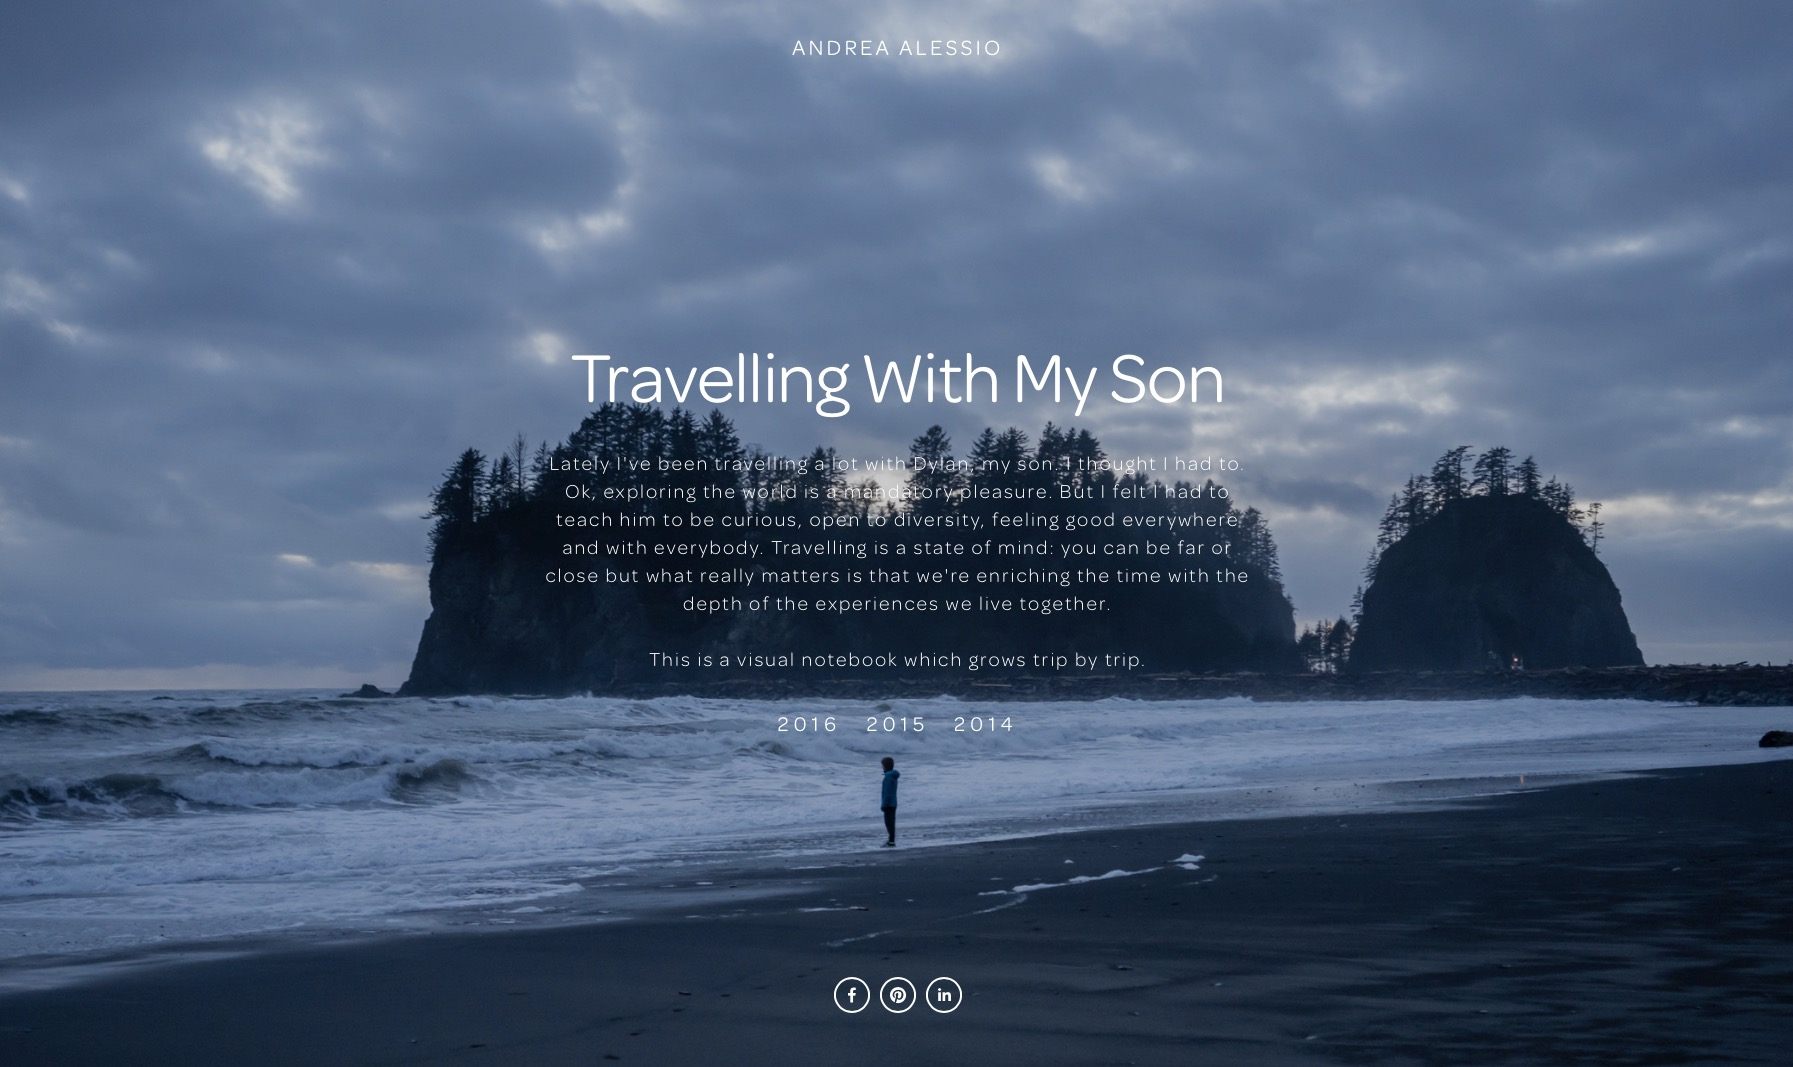 Travelling with my son - Andrea Alessio